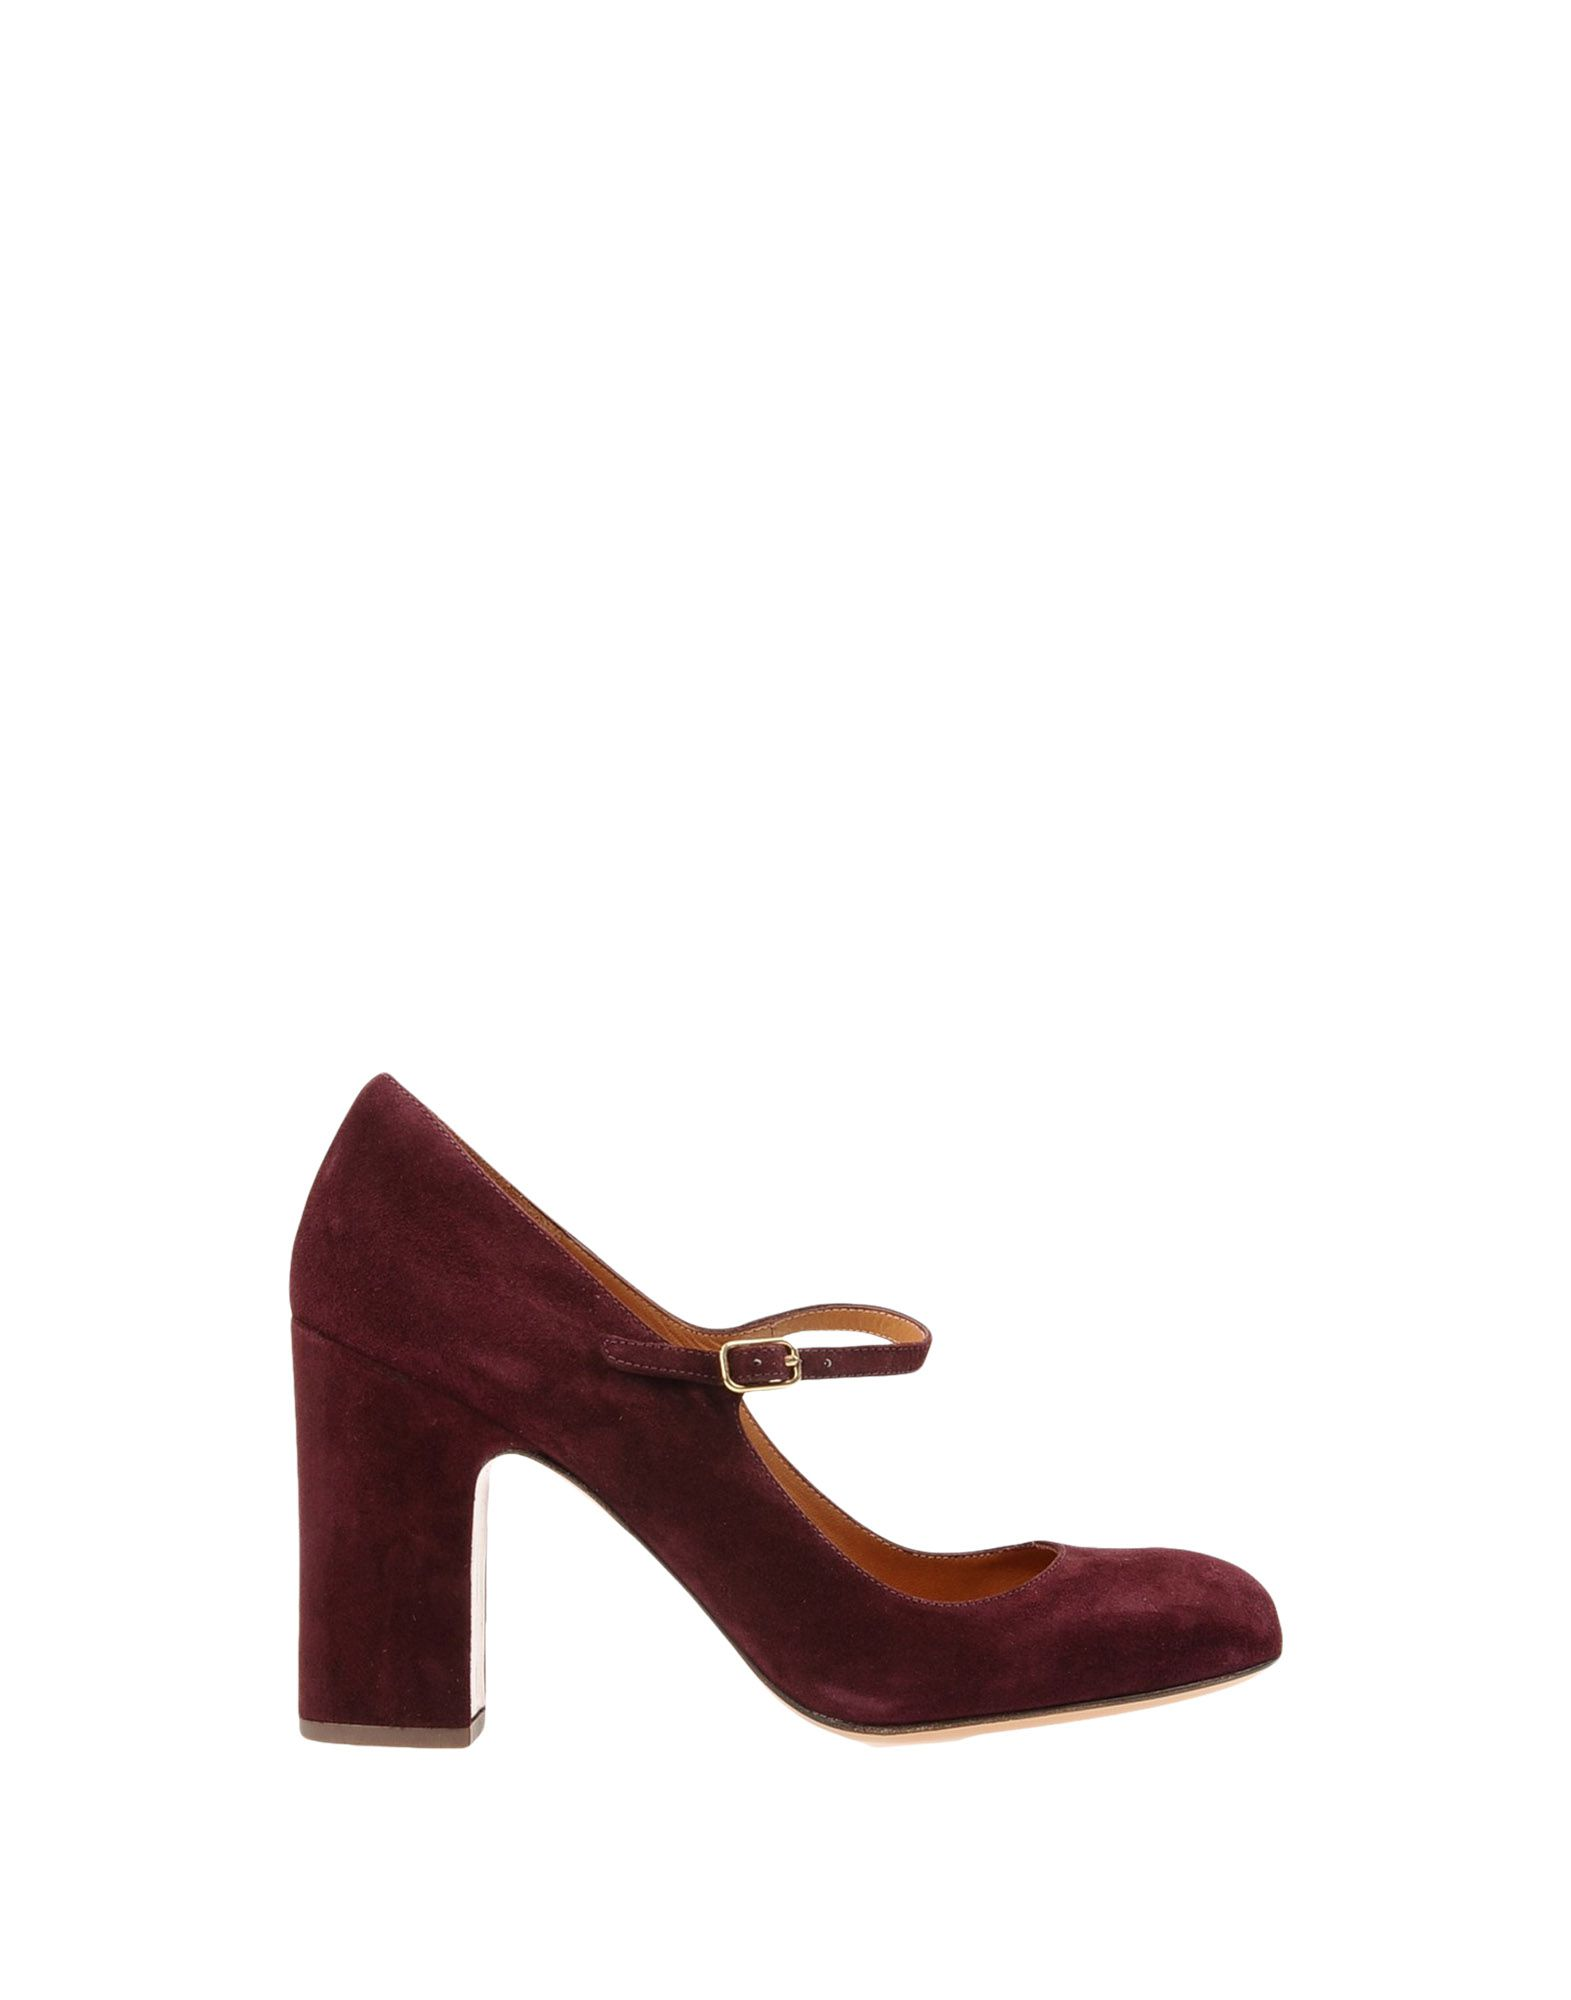 Chie By  Chie Mihara Pumps Damen  By 11357678OJGut aussehende strapazierfähige Schuhe 3712e4